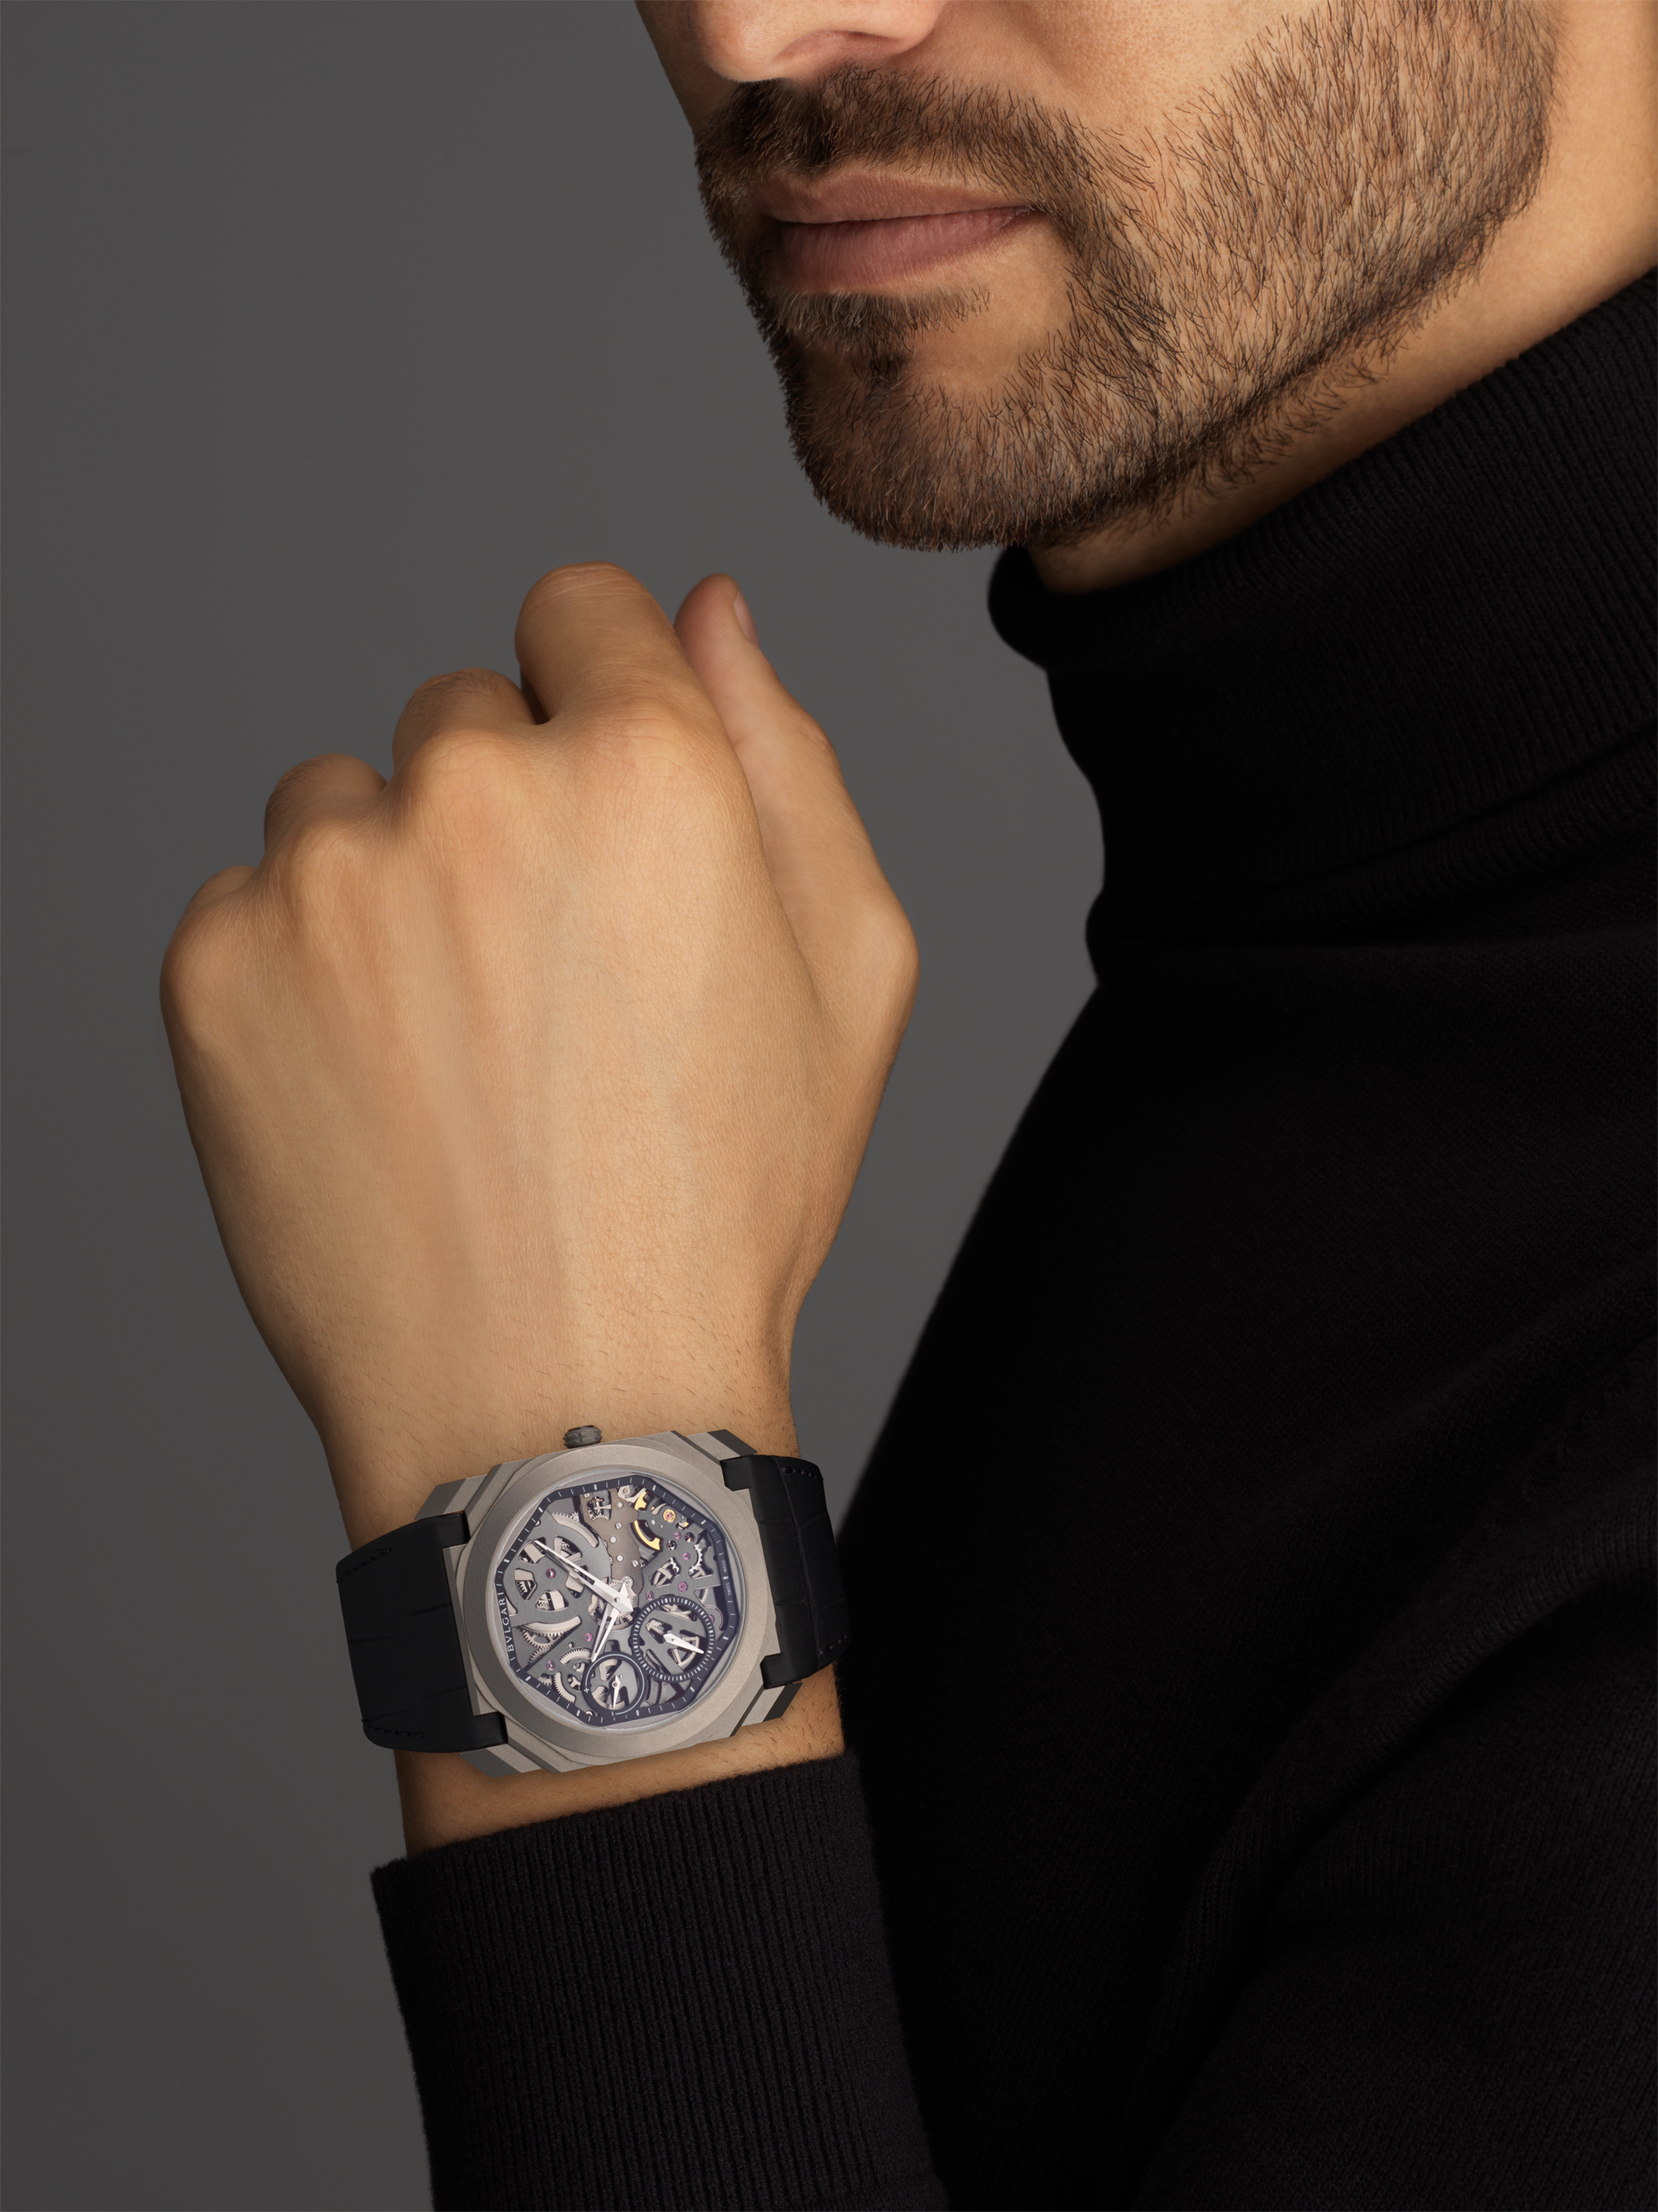 Octo Finissimo watch with ultra-thin skeletonized mechanical manufacture movement, manual winding and small seconds, titanium case, transparent dial and black alligator bracelet 102714 image 5